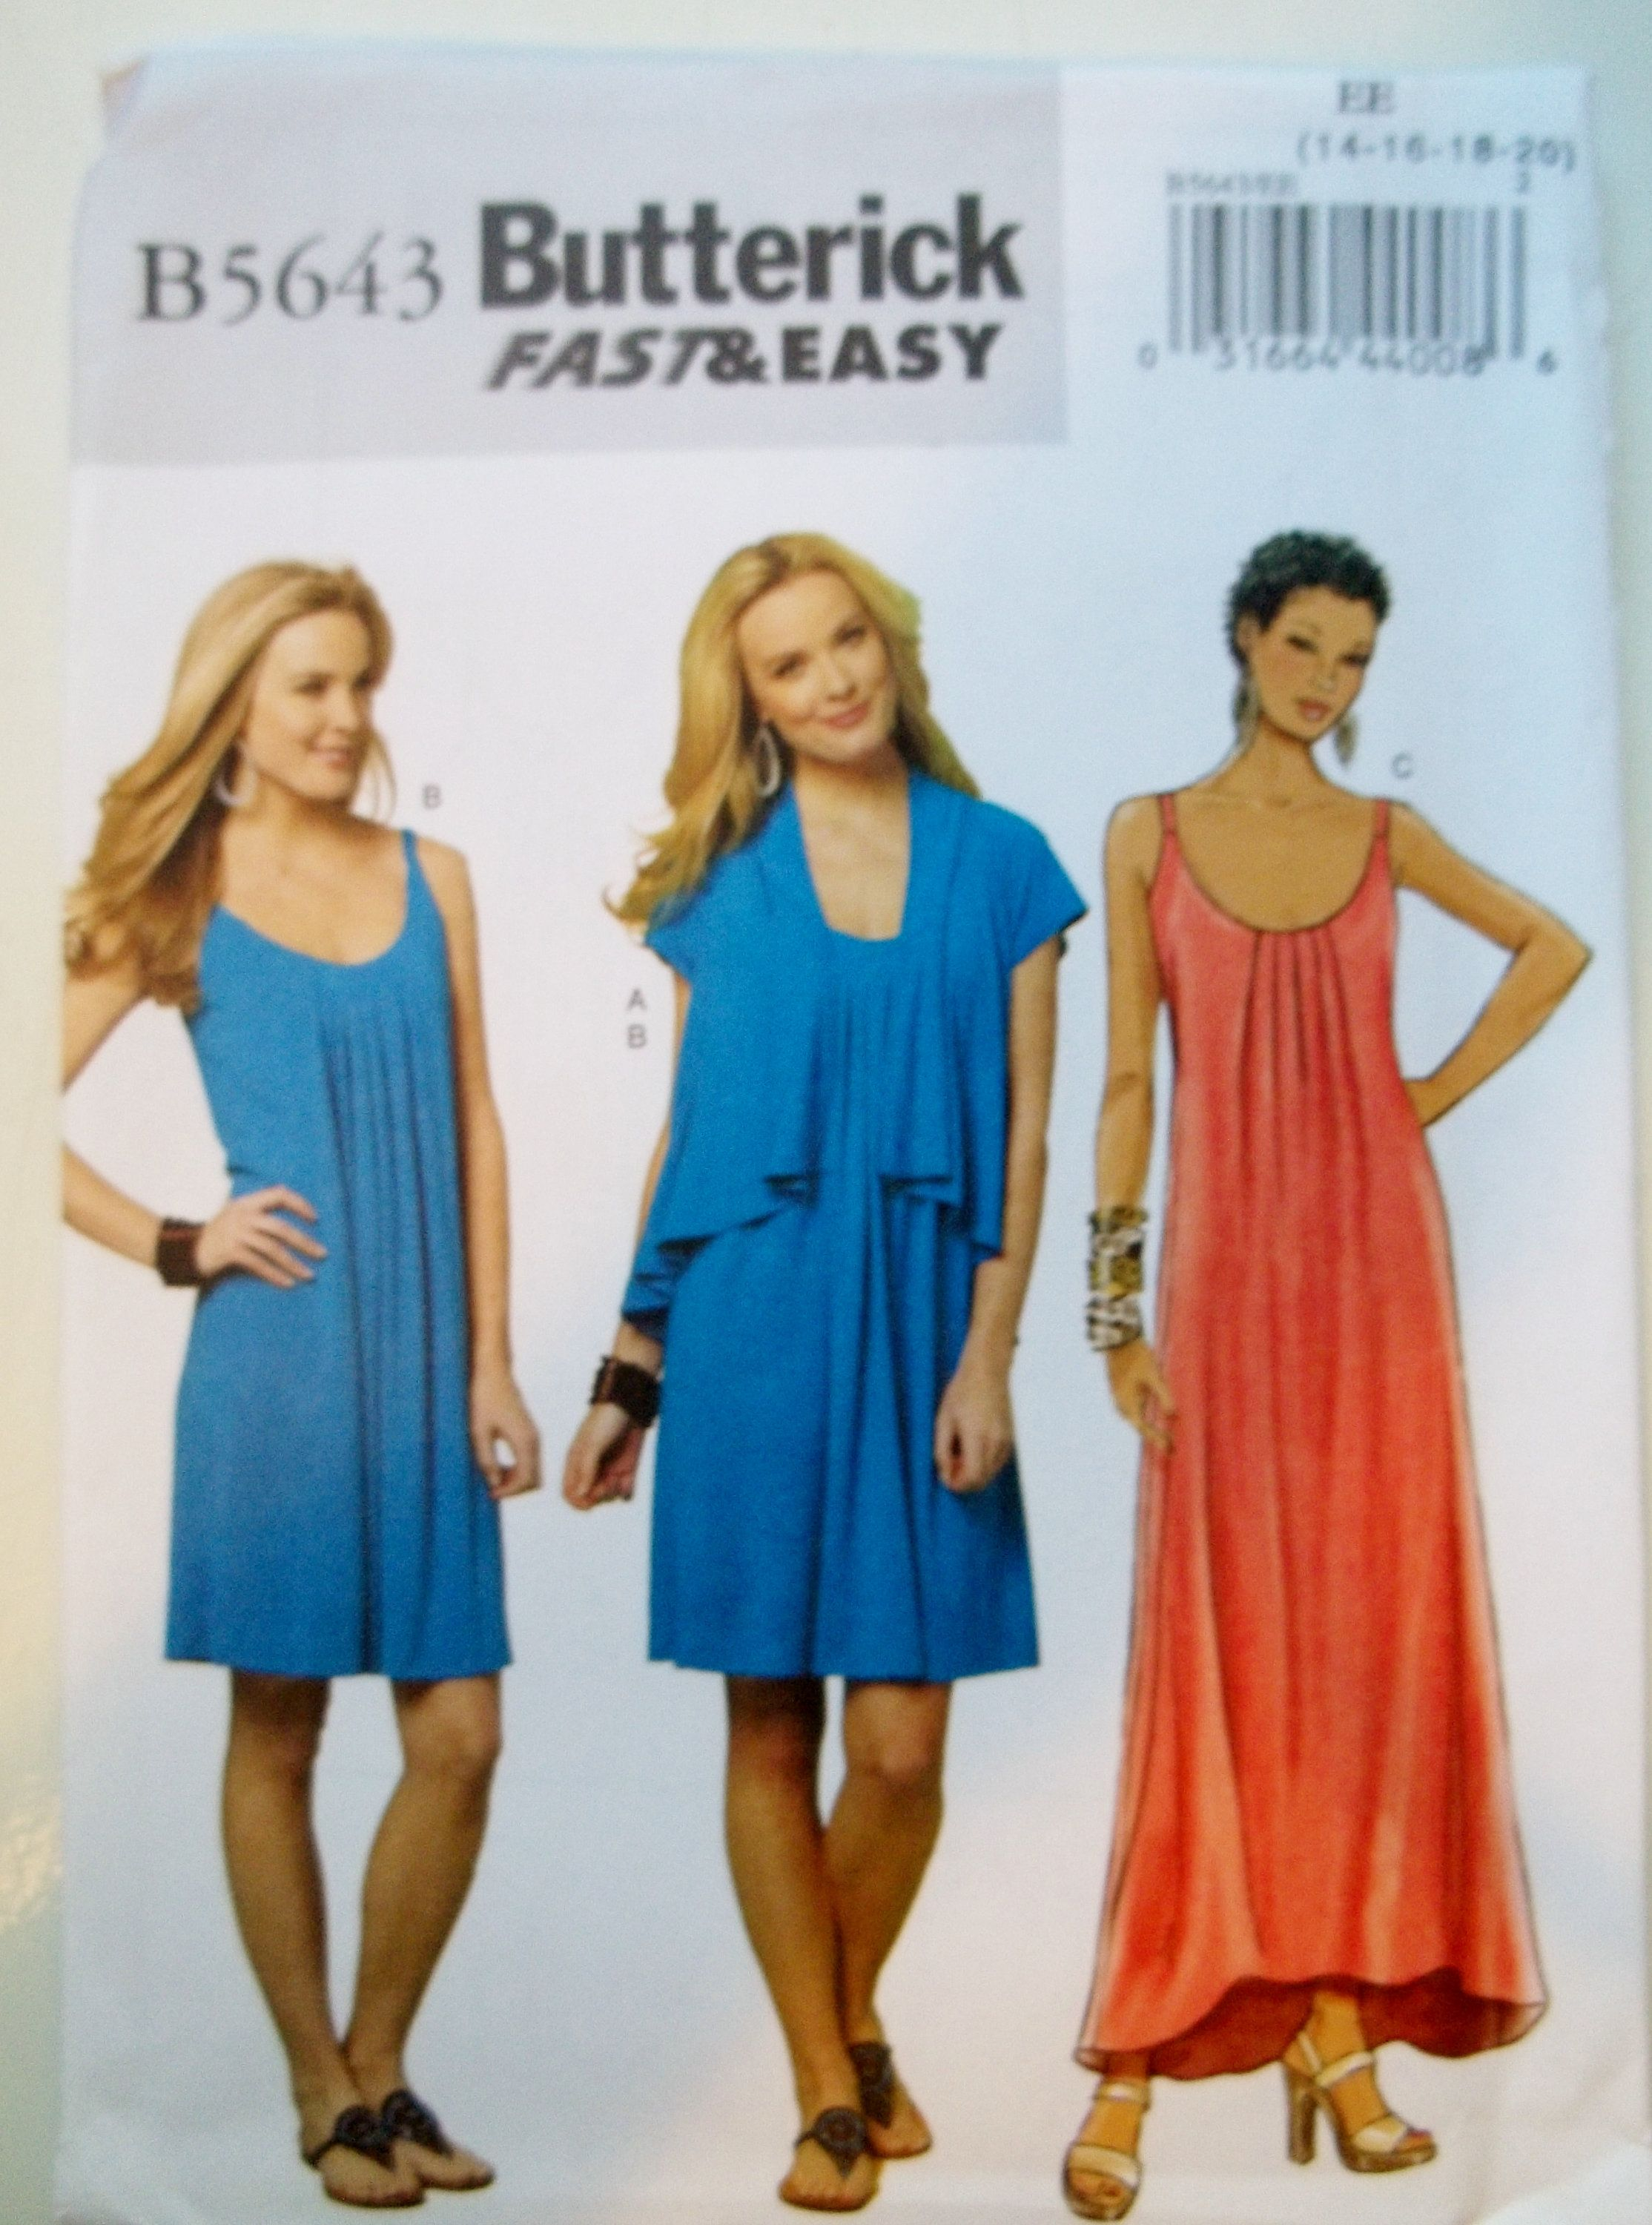 Misses Easy Summer Dress With Cascade Jacket Butterick B5643 Sewing Pattern Maxi Or A Summer Dress Patterns Simple Summer Dresses Summer Dress Sewing Patterns [ 3000 x 2228 Pixel ]